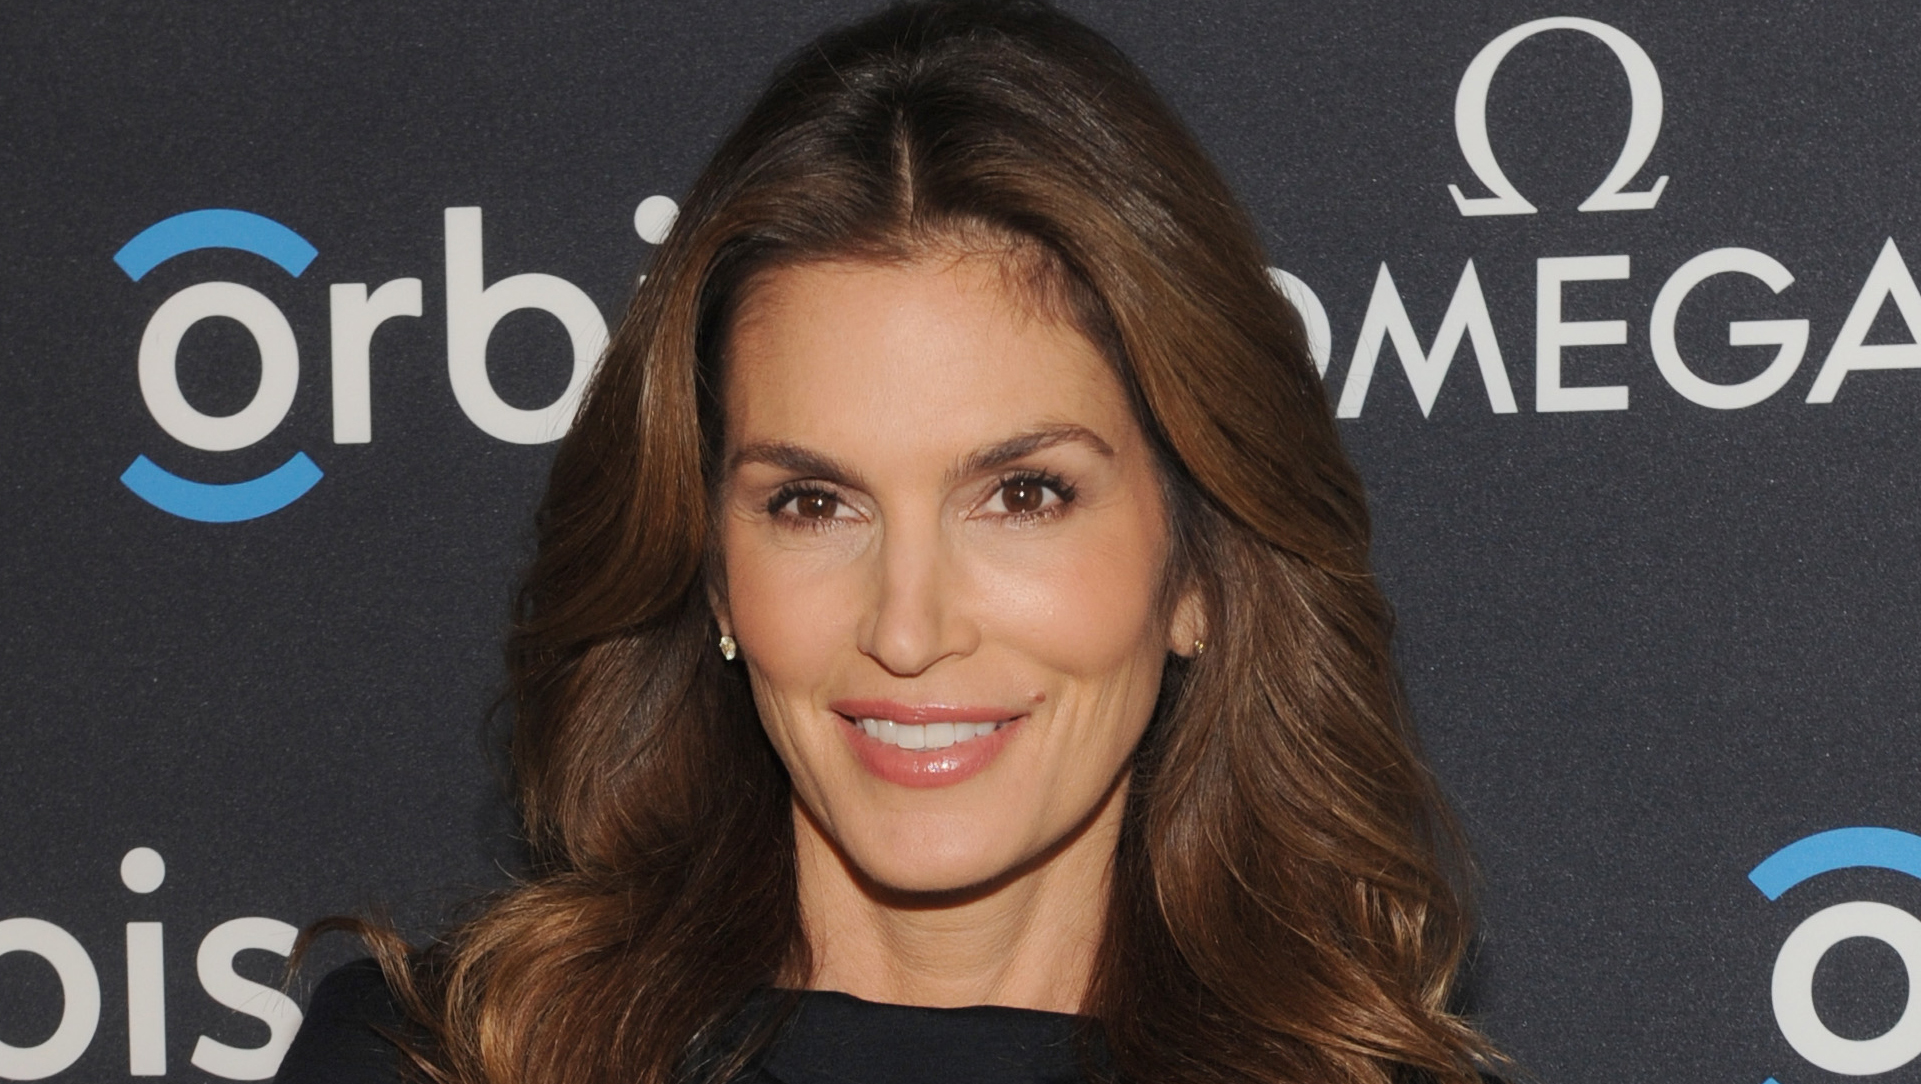 The Unretouched Cindy Crawford Photo Is Fake Says Photographer